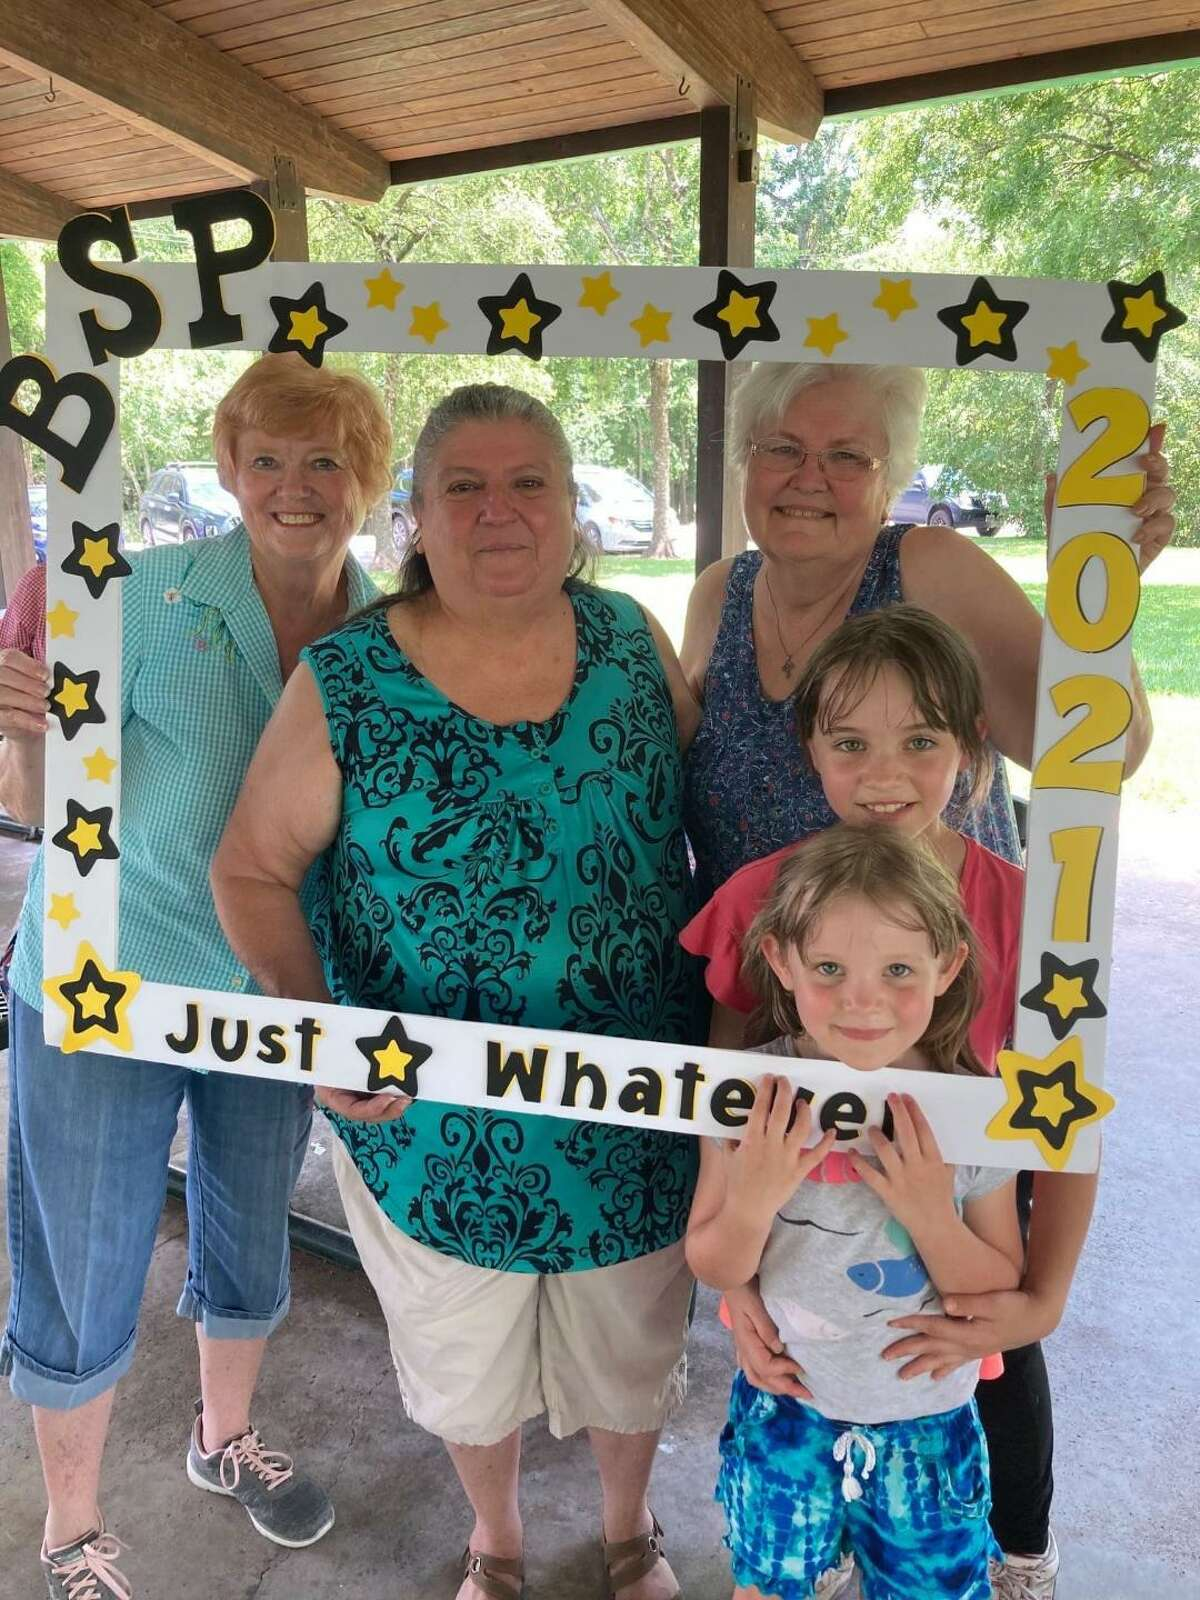 """Members of the Theta Master chapter of Beta Sigma Phi fill a frame during the """"Just Whatever"""" picnic in June at Stevenson Park, 1100 S. Friendswood Drive. From left are: Theta Master President Shirley McGuire, of Pearland; Rosa Vance, of Hitchcock; Linda Abbott, of Friendswood, and Ellouise and Skylar Vance, both of Pearland. For membership information, contact Judy Hotman, 713-724-3154."""